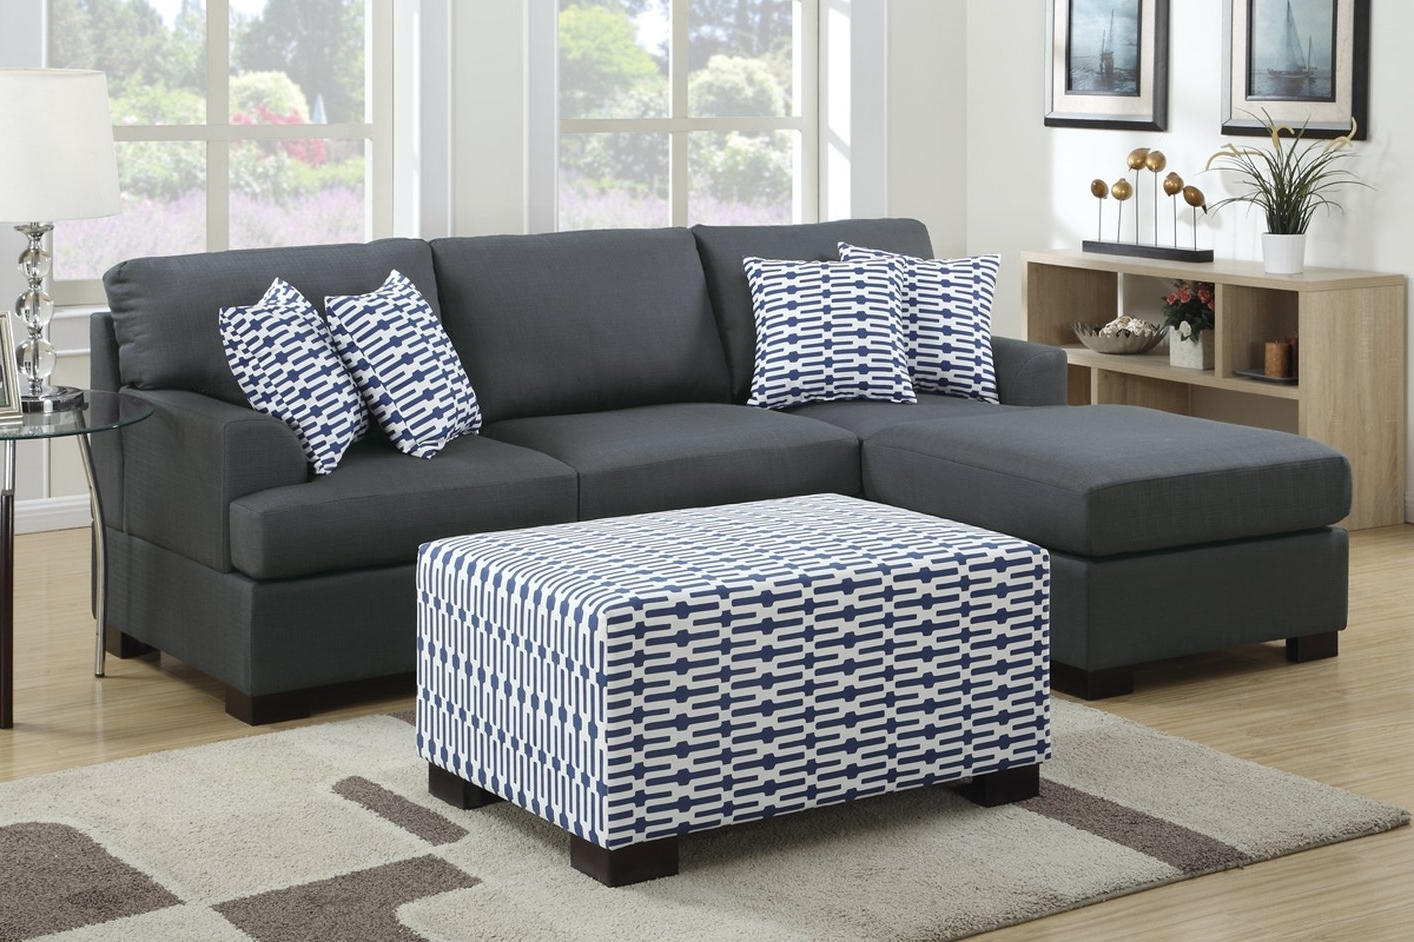 Favorite Camille Black Fabric Chaise Lounge – Steal A Sofa Furniture Outlet Intended For Fabric Chaise Lounges (View 10 of 15)